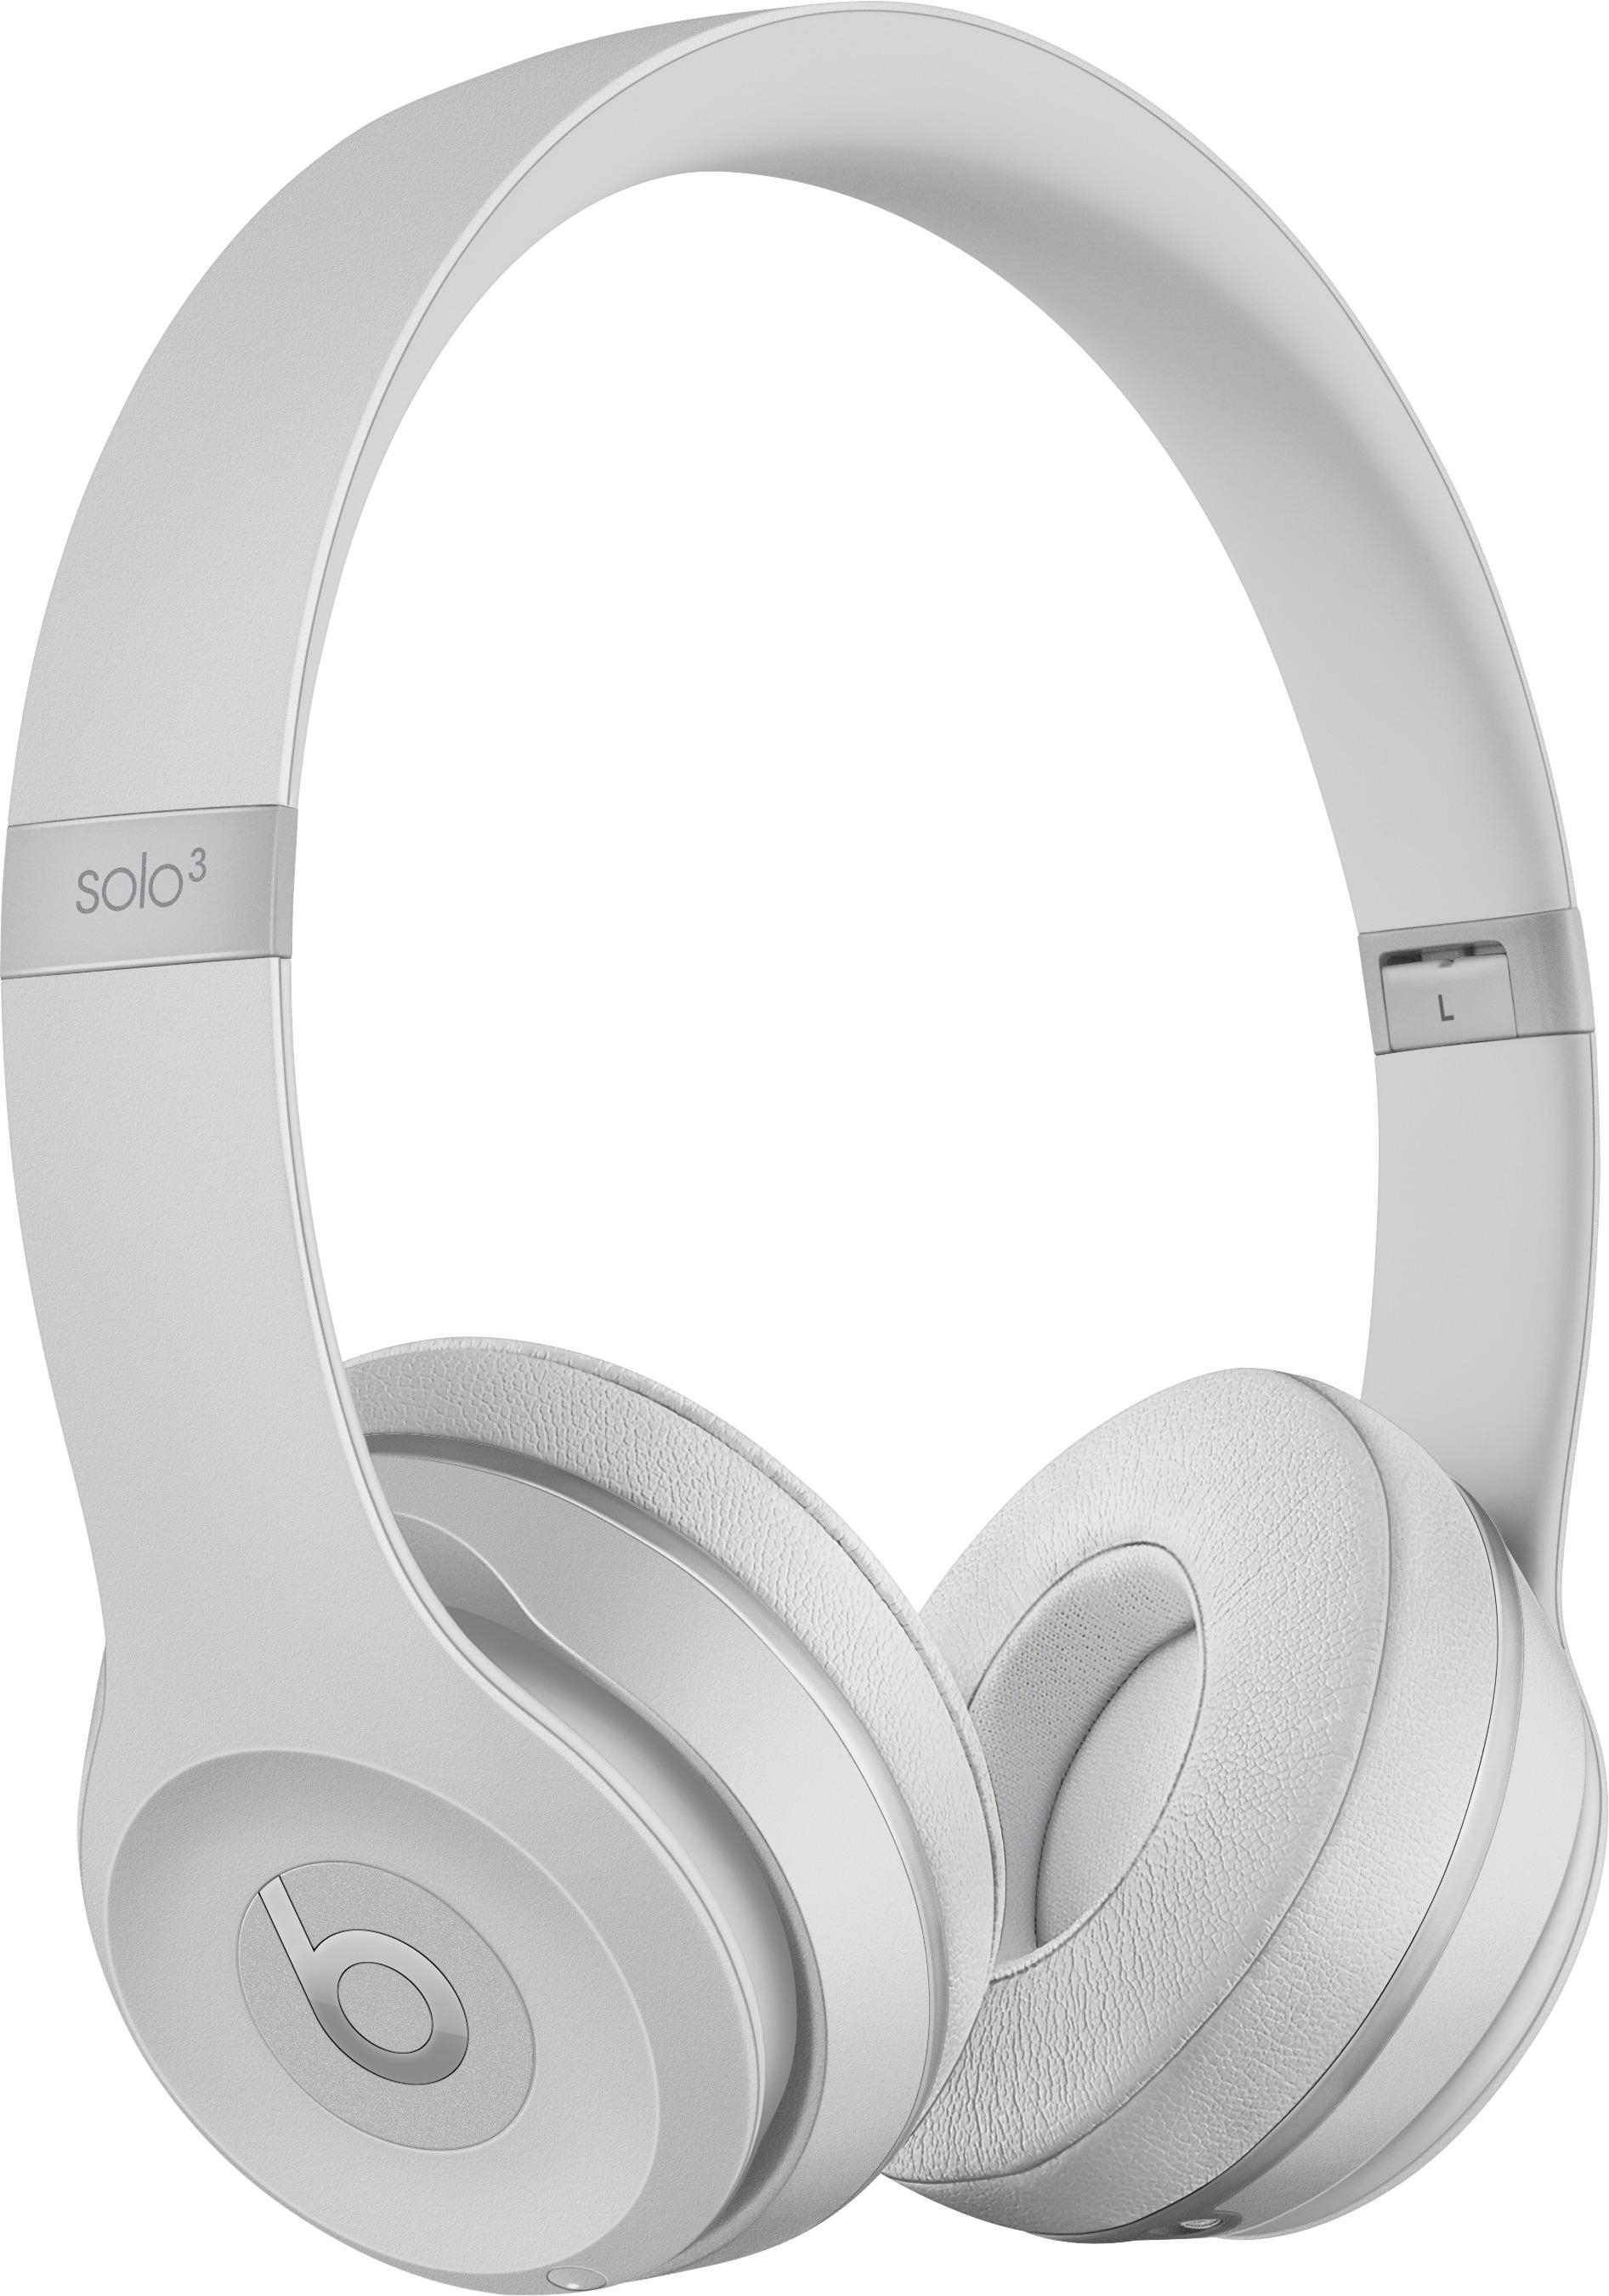 Beatsdr. Dre Beats Solo3 Wireless Headphones Silver Mr3T2Ll/a throughout Maddy 70 Inch Tv Stands (Image 4 of 30)